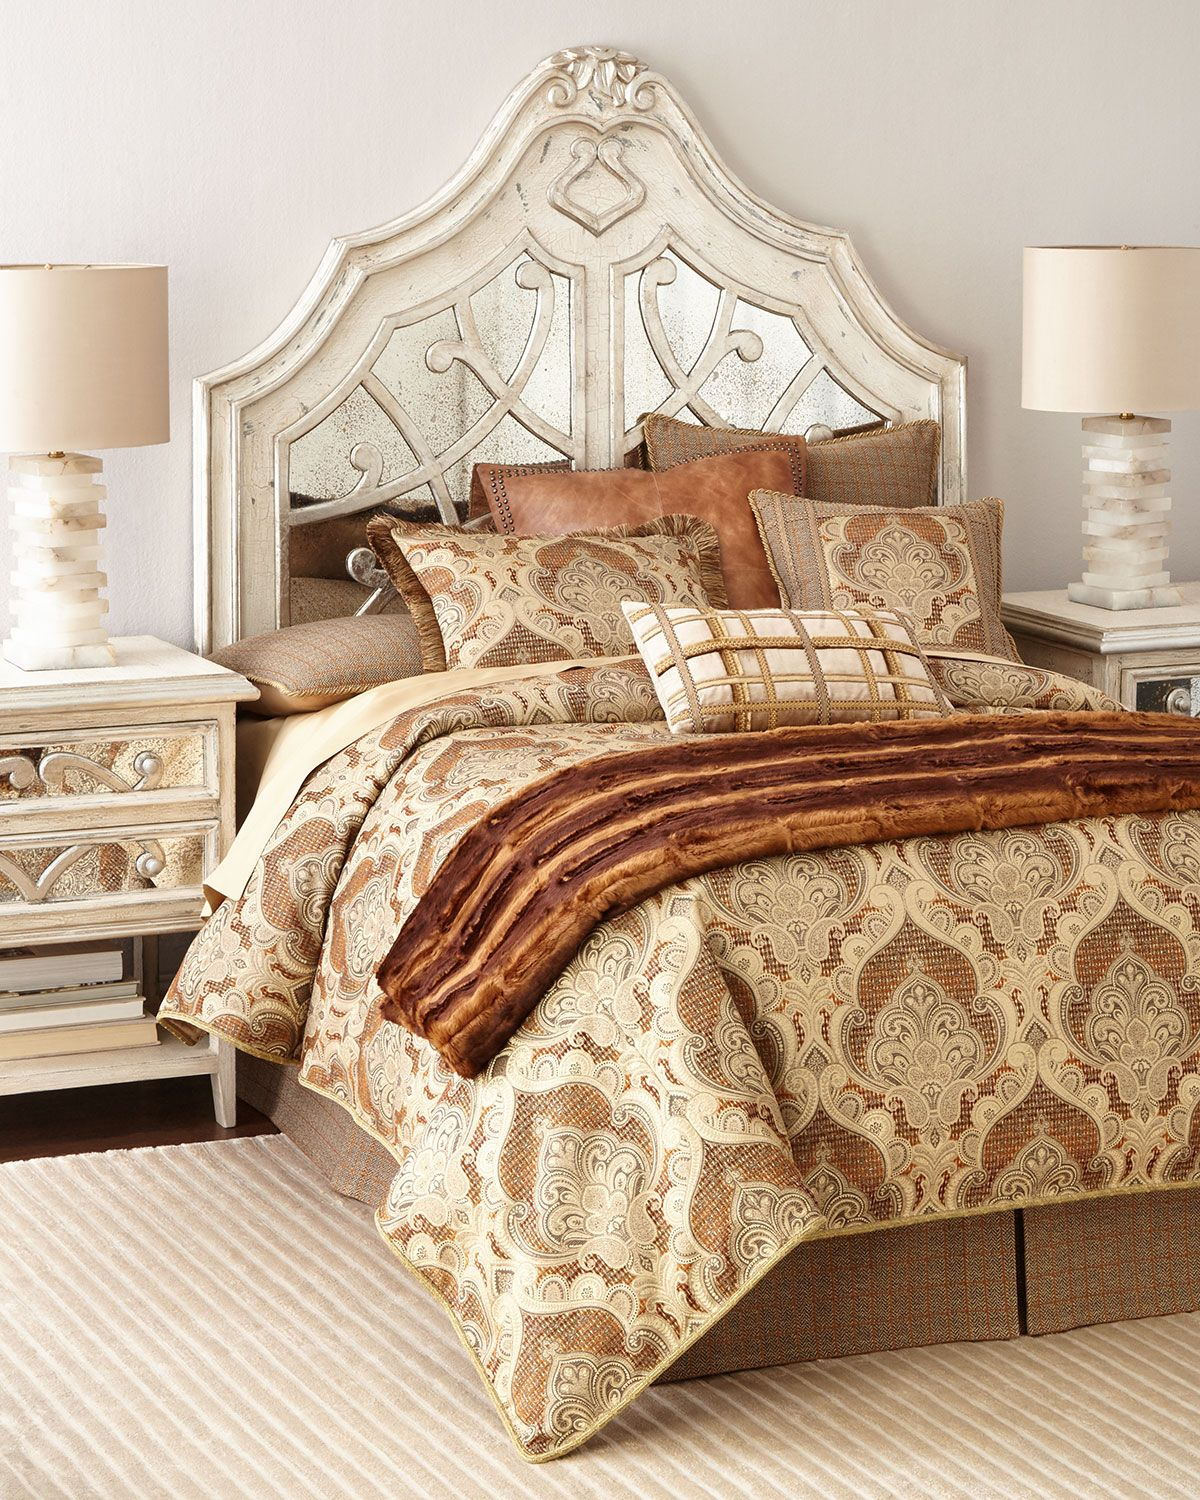 Lynley Mirrored King Headboard King Headboard Mirror Headboard